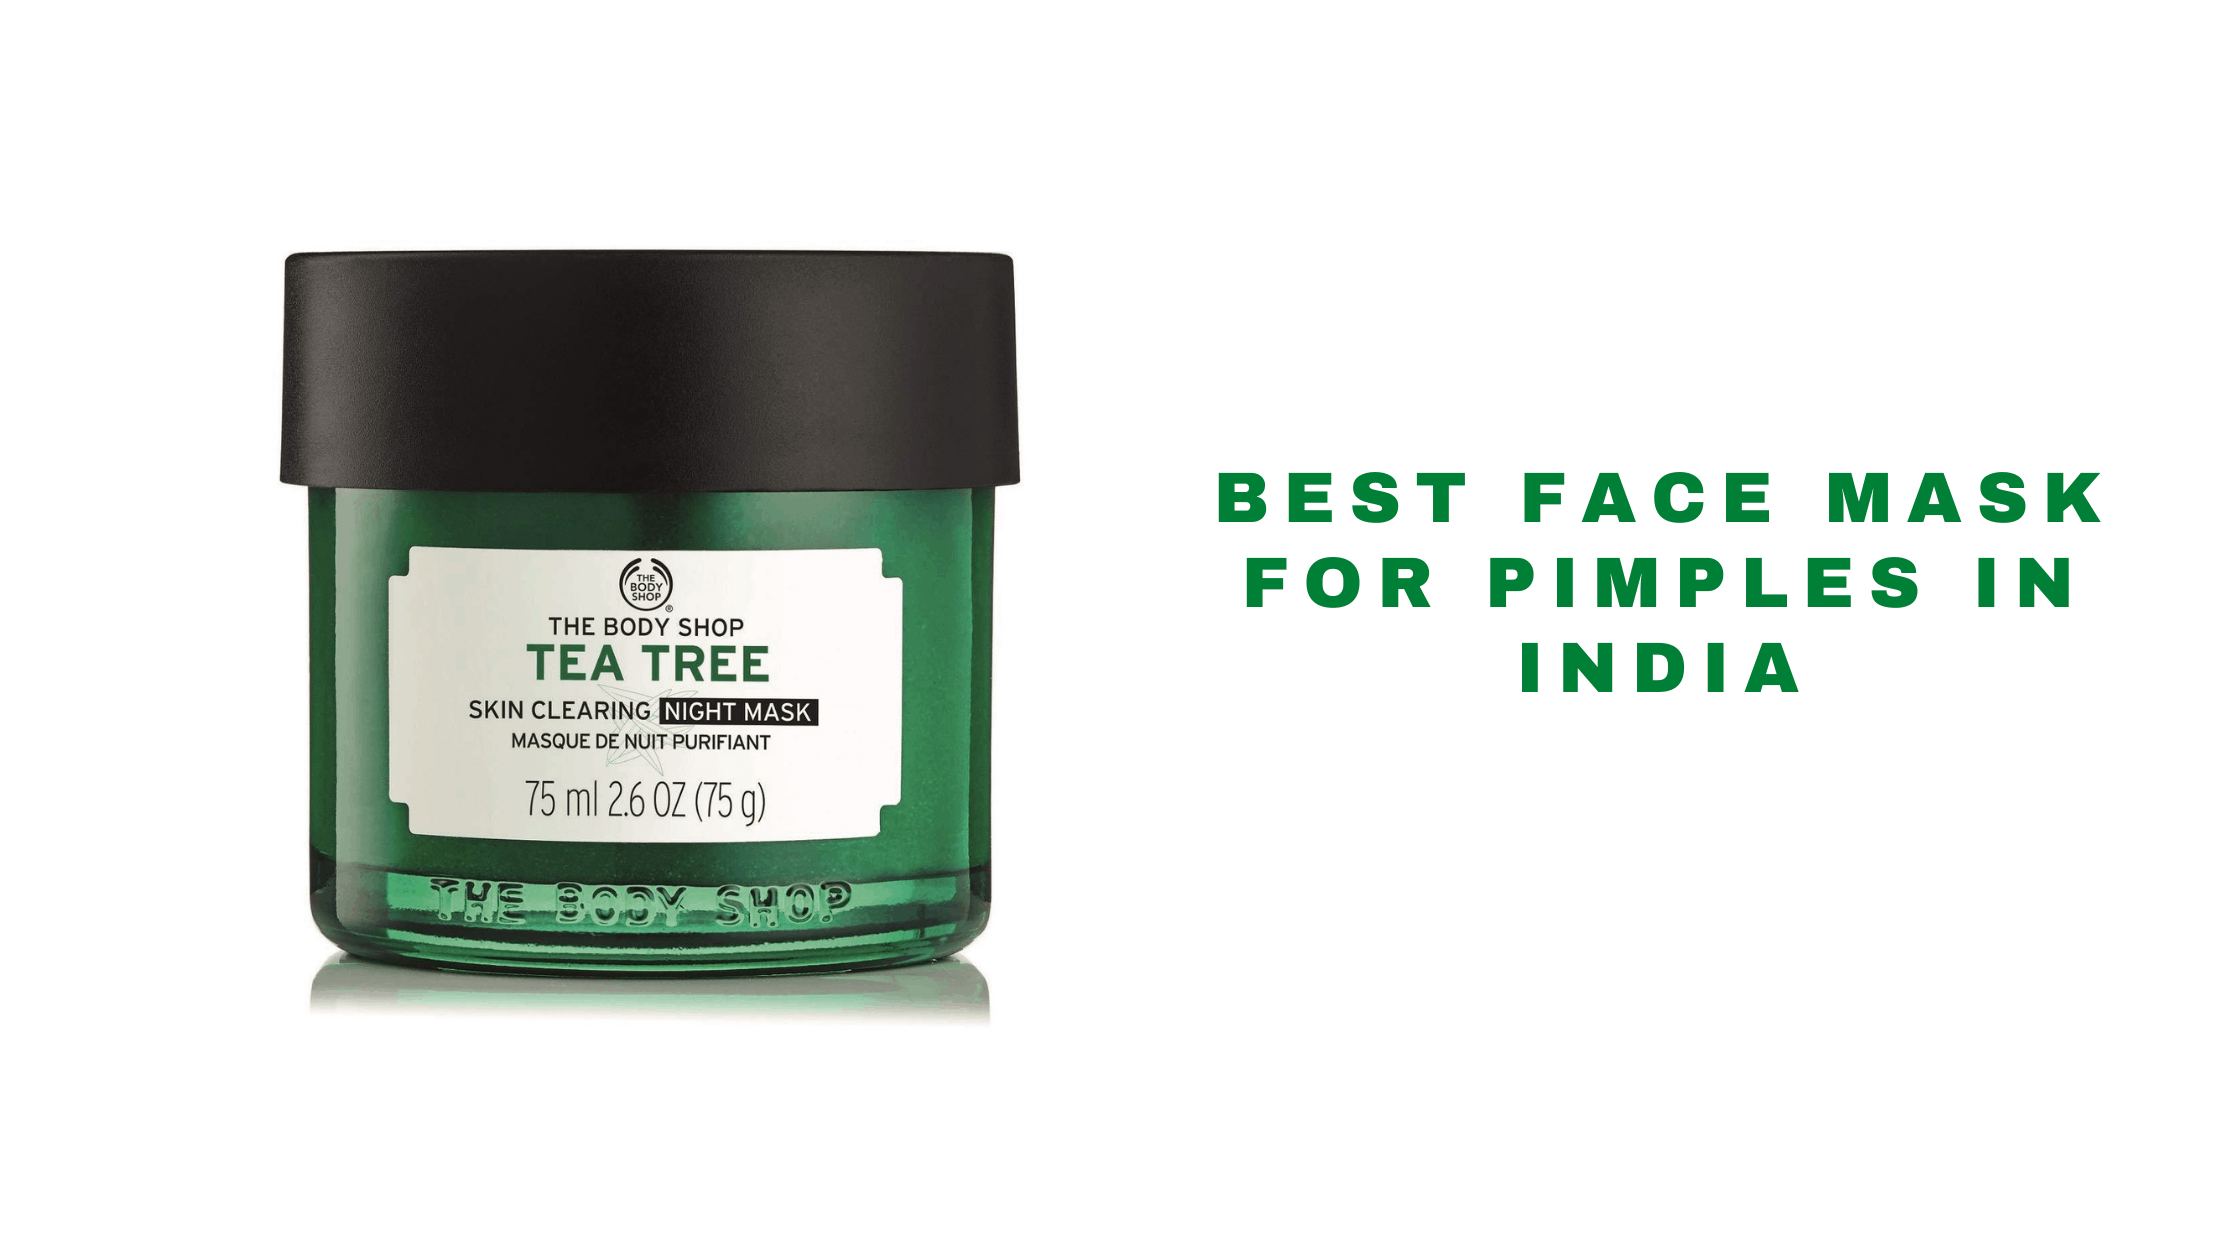 best face mask brands in india for pimples